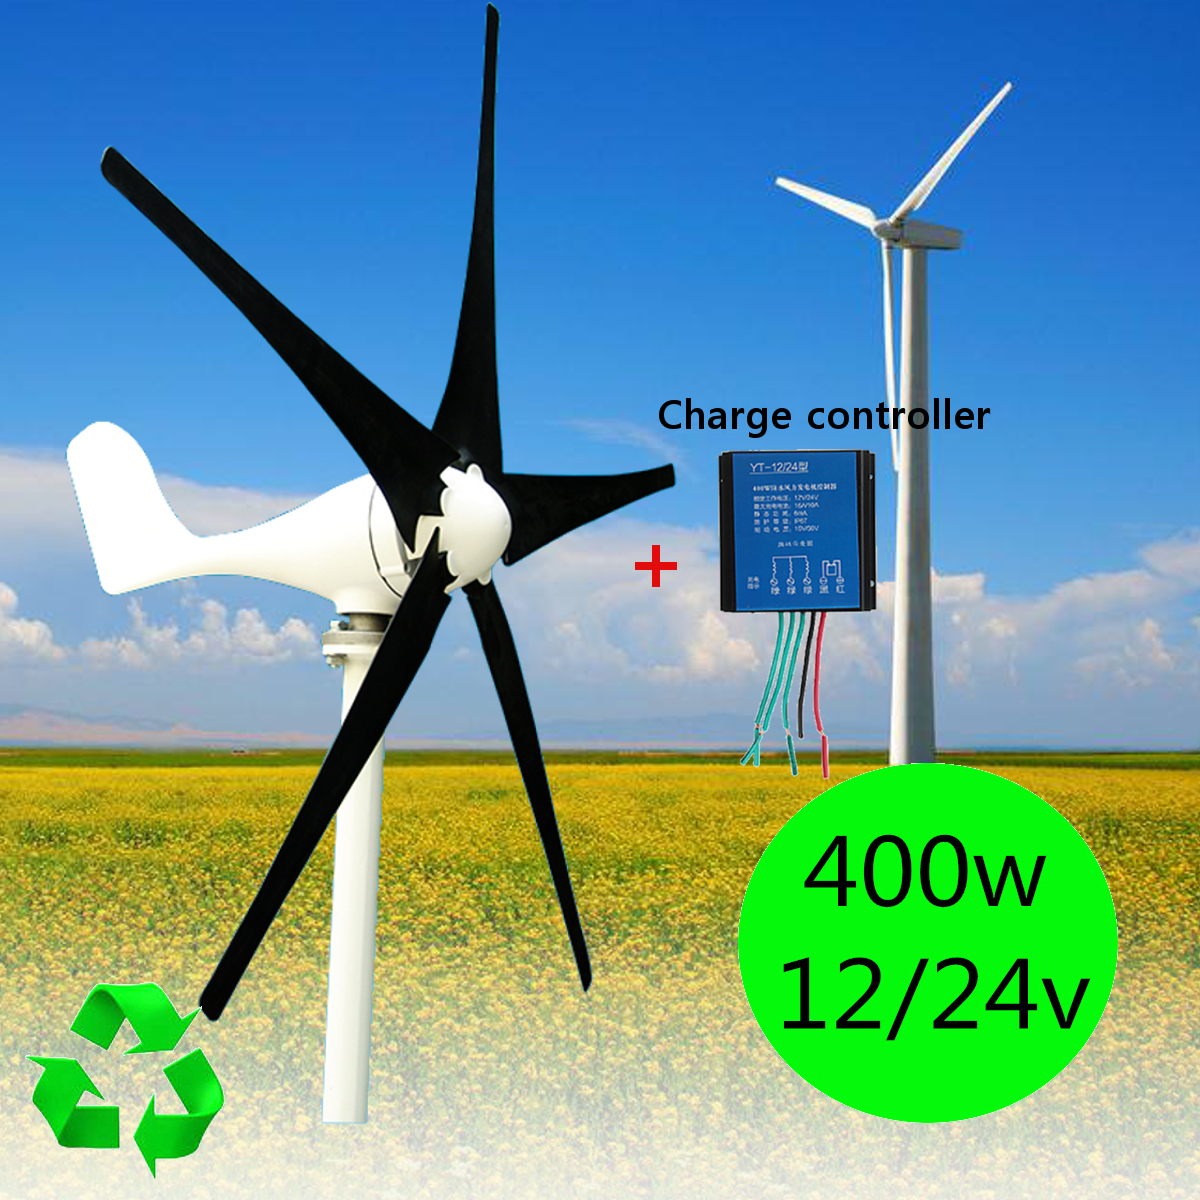 400W Power Wind Turbine Generator DC 24V 5 Blade with Windmill Charge Controller (Max 500W)